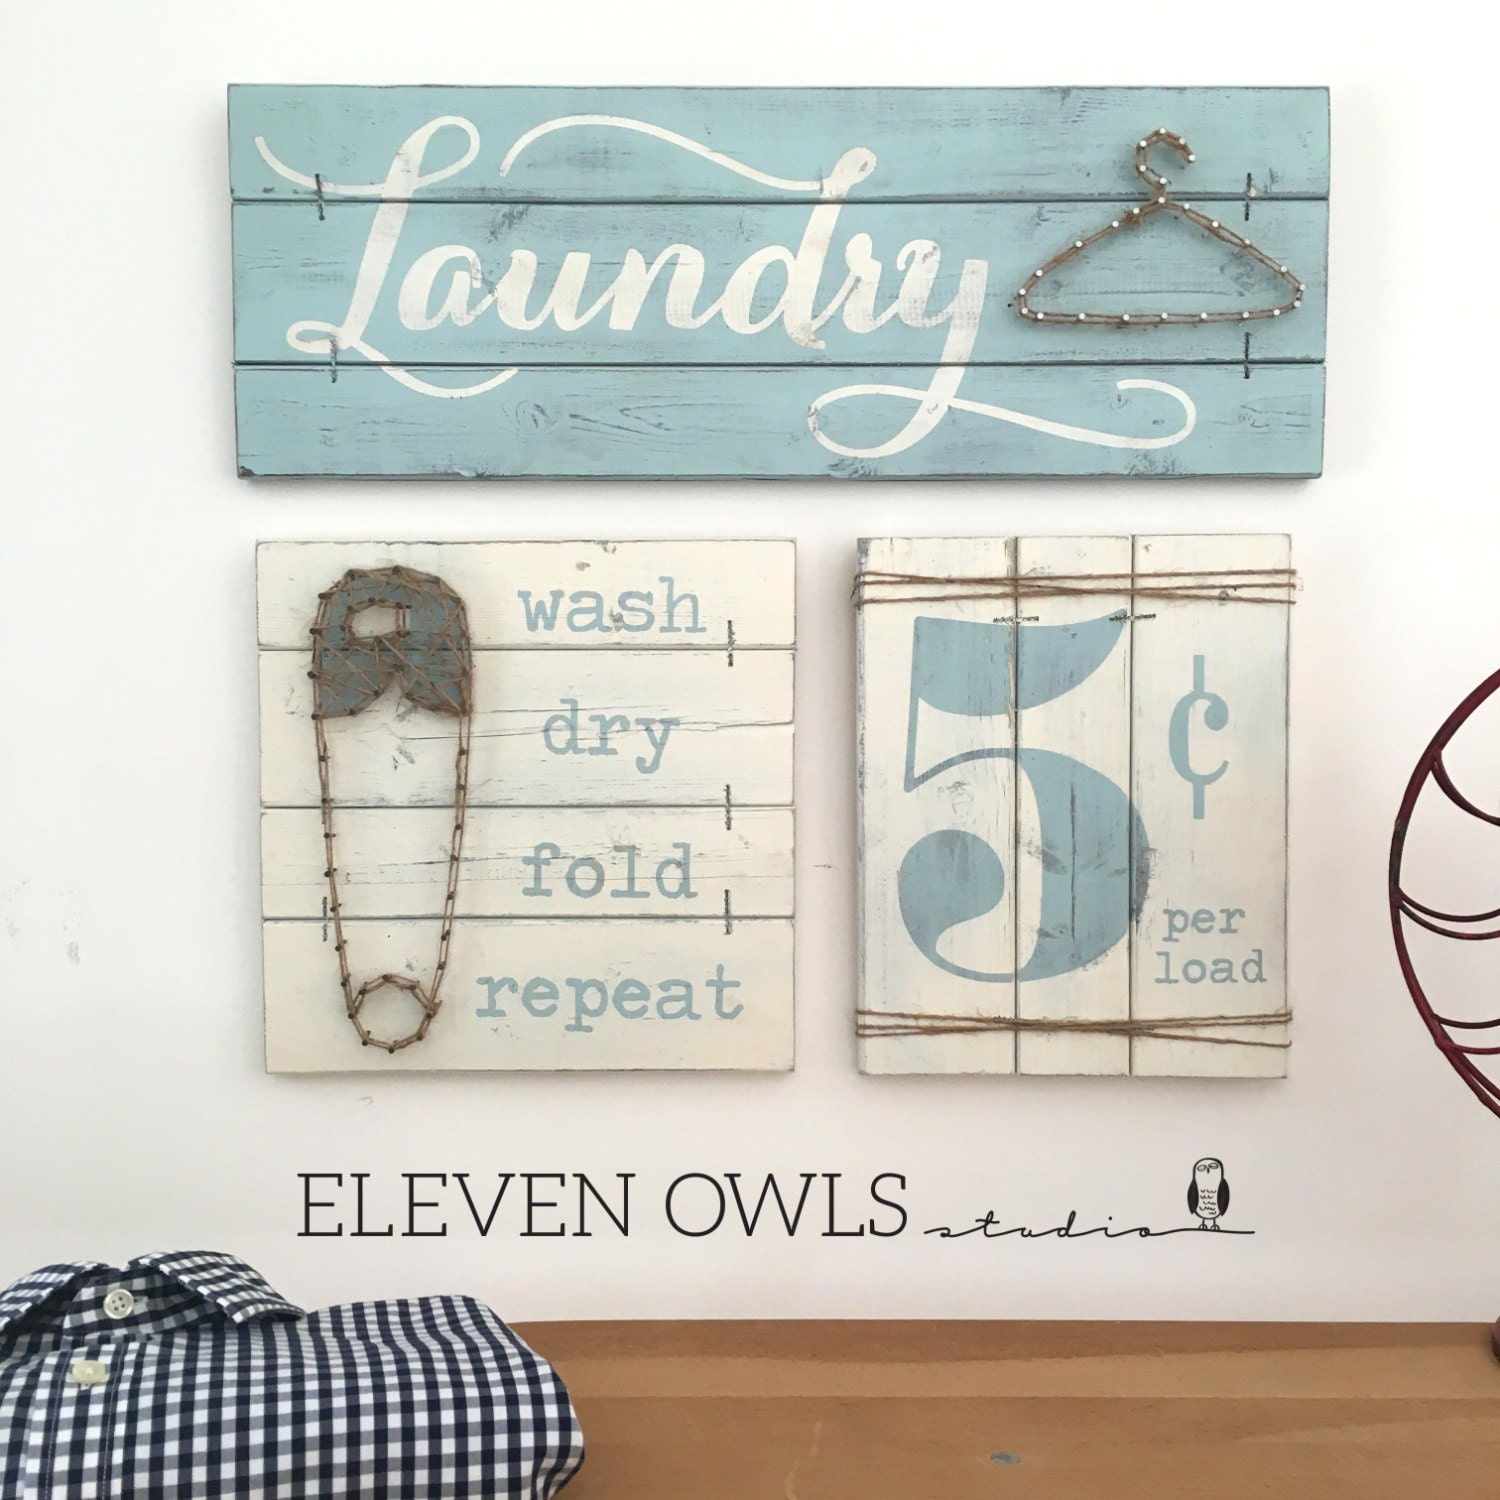 Laundry Room Signs Decor: LAUNDRY SIGN SET Laundry Room Decor Laundry Room Decor